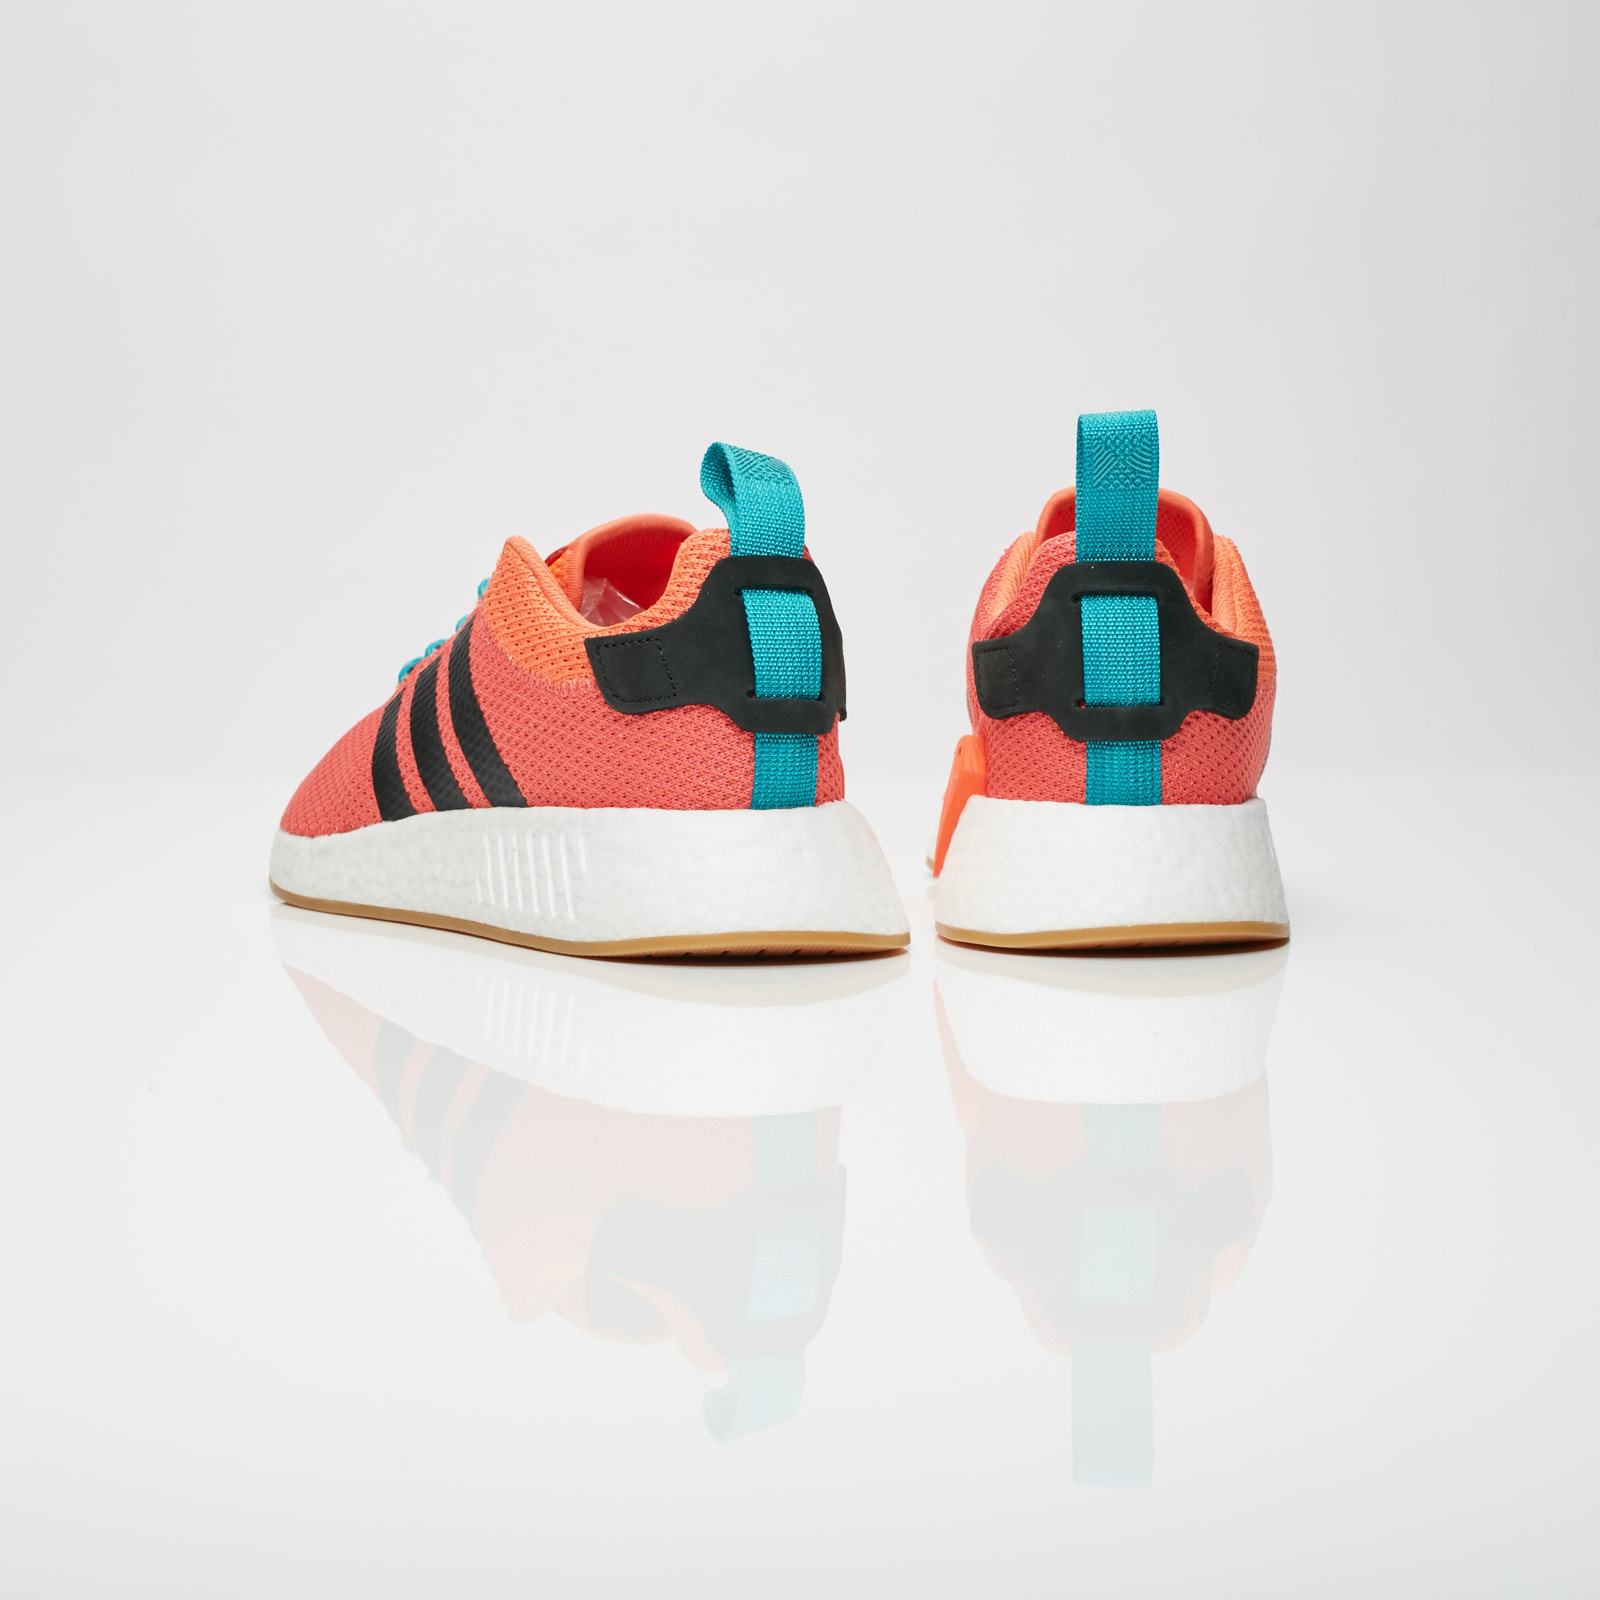 bad4e0e84 adidas NMD R2 Summer - Cq3081 - Sneakersnstuff